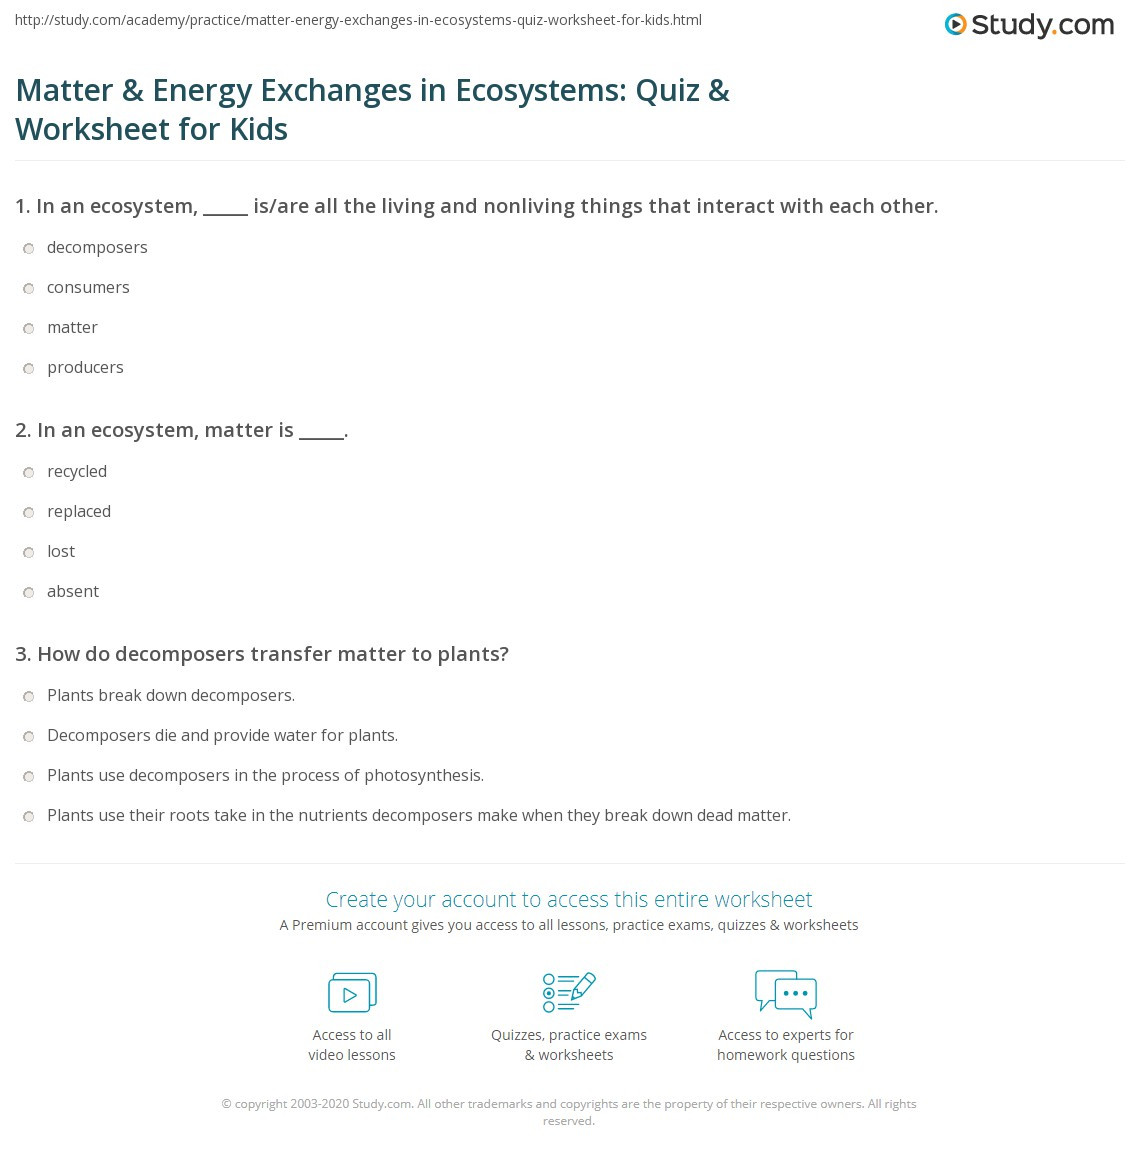 5th Grade Ecosystem Worksheets Matter & Energy Exchanges In Ecosystems Quiz & Worksheet